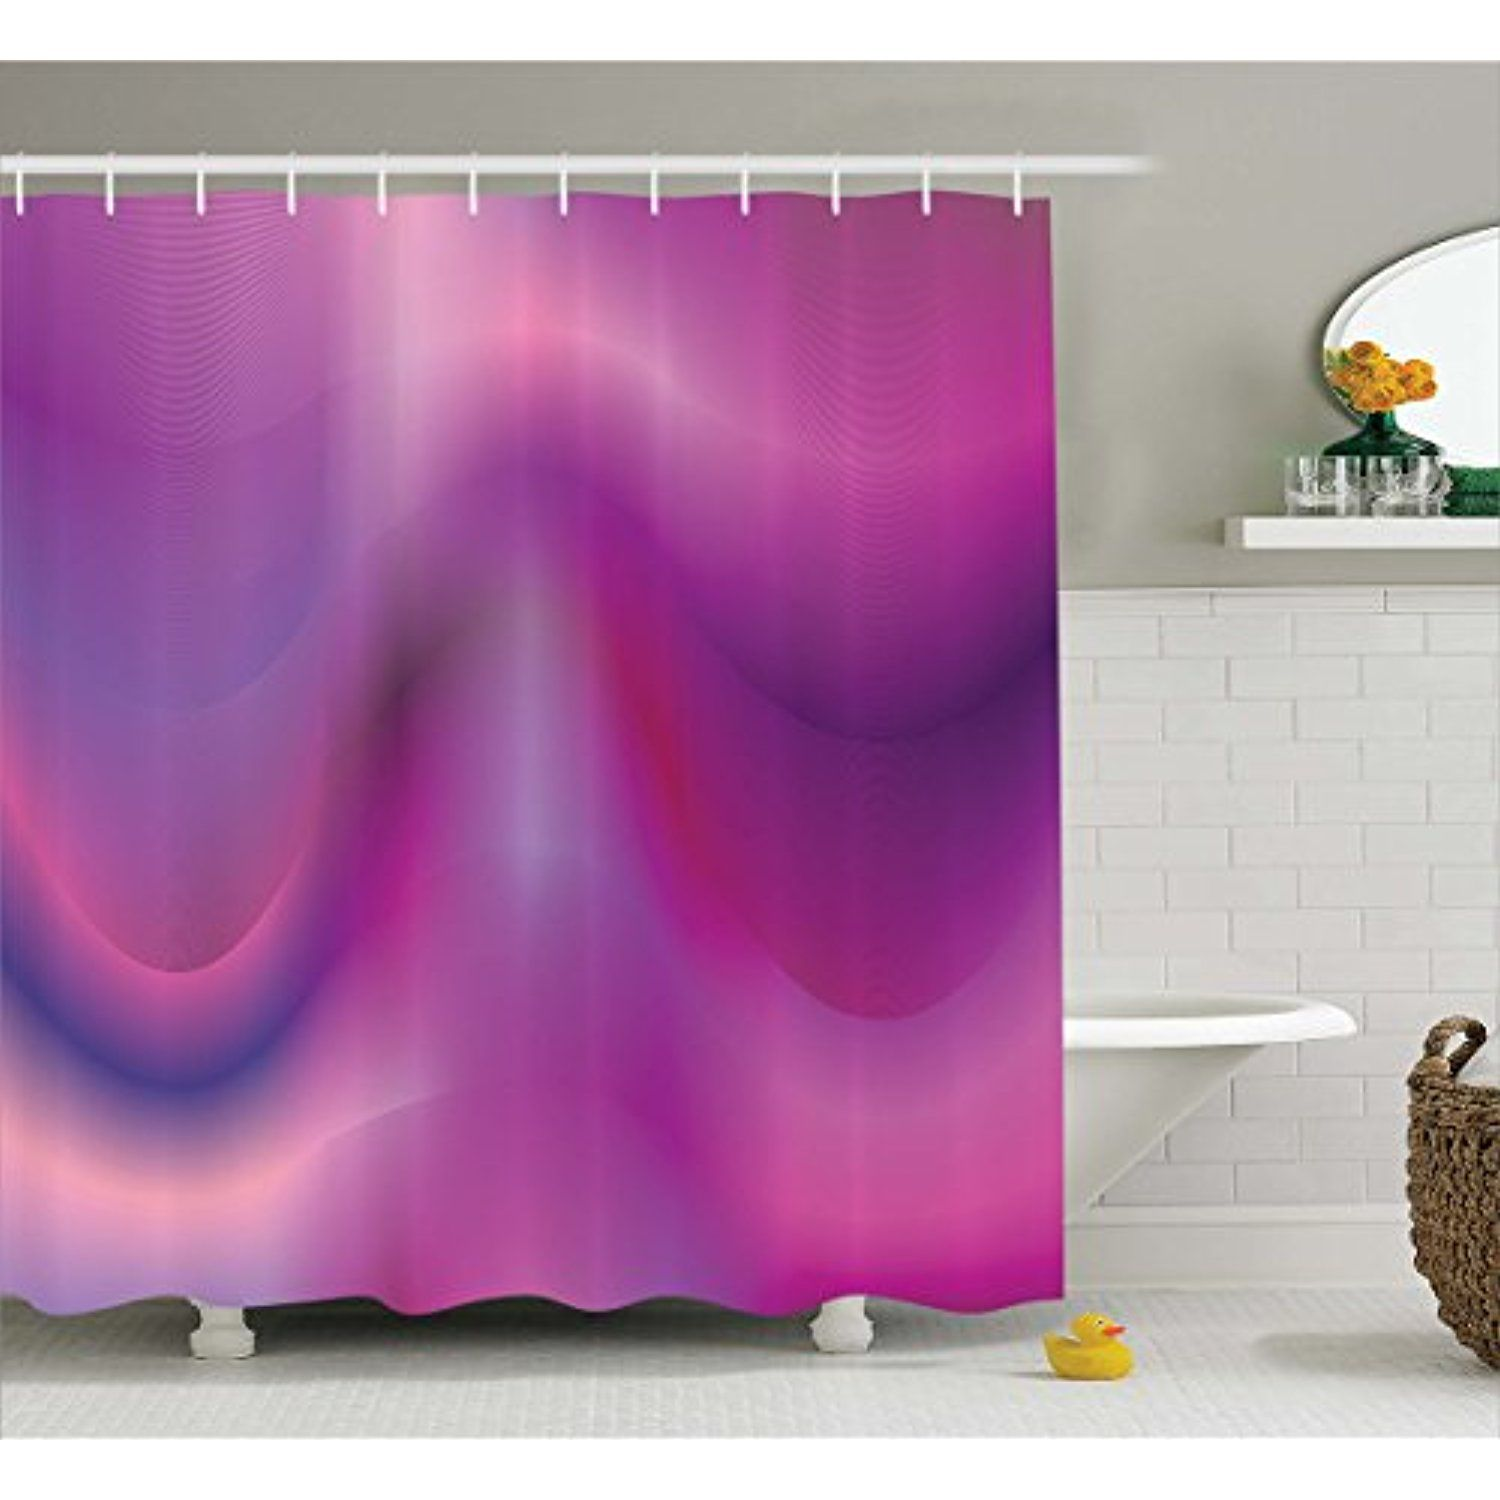 Magenta Shower Curtain By Lunarable Abstract Artificial Blurred Radiant Wavy Liquid Like Shades In